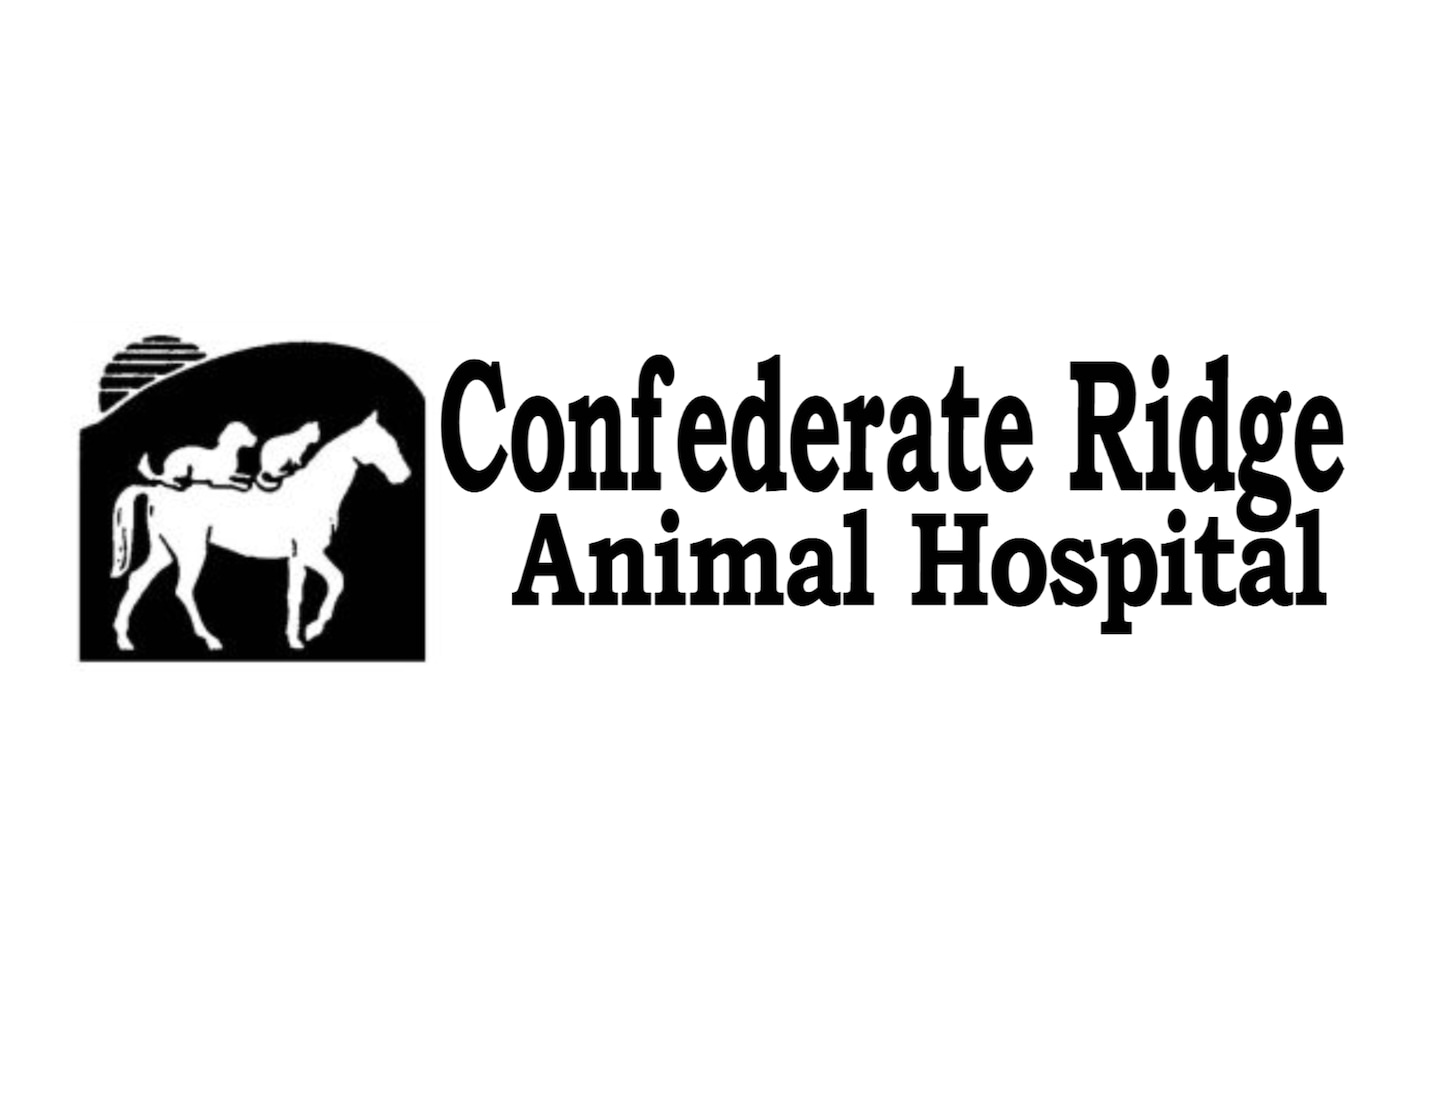 Confederate Ridge Animal Hospital